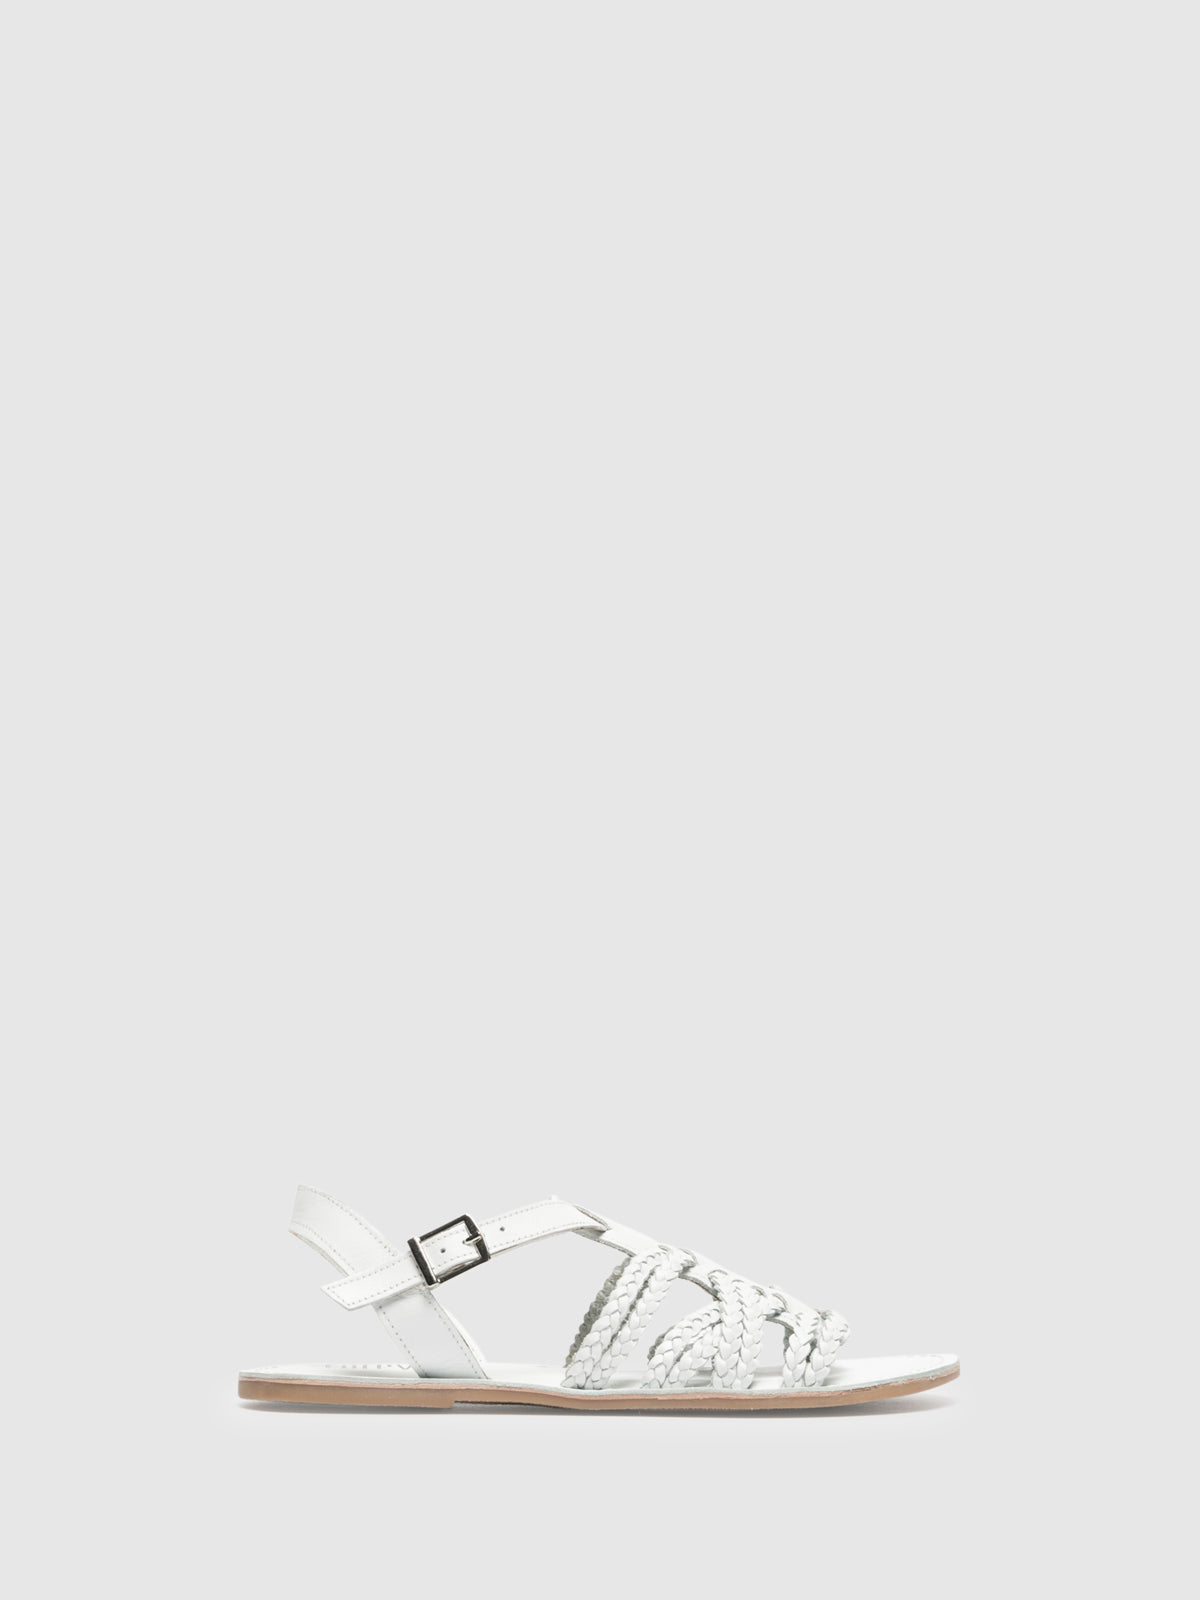 Foreva White Strappy Sandals